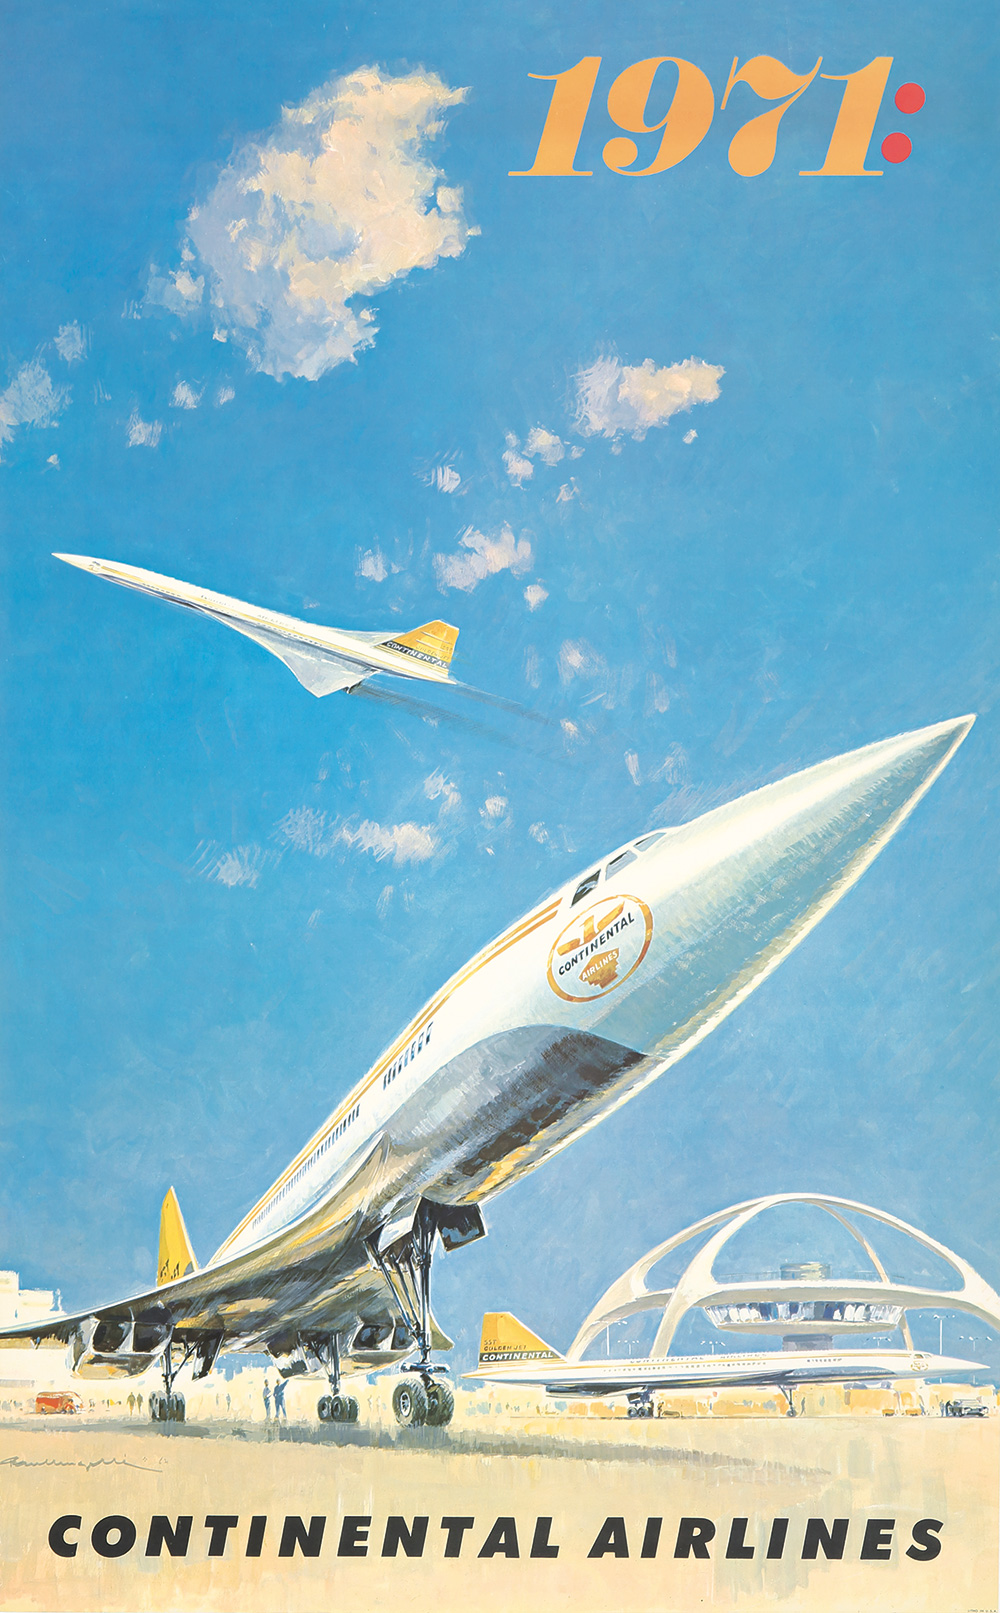 89. Continental Airlines 1971.